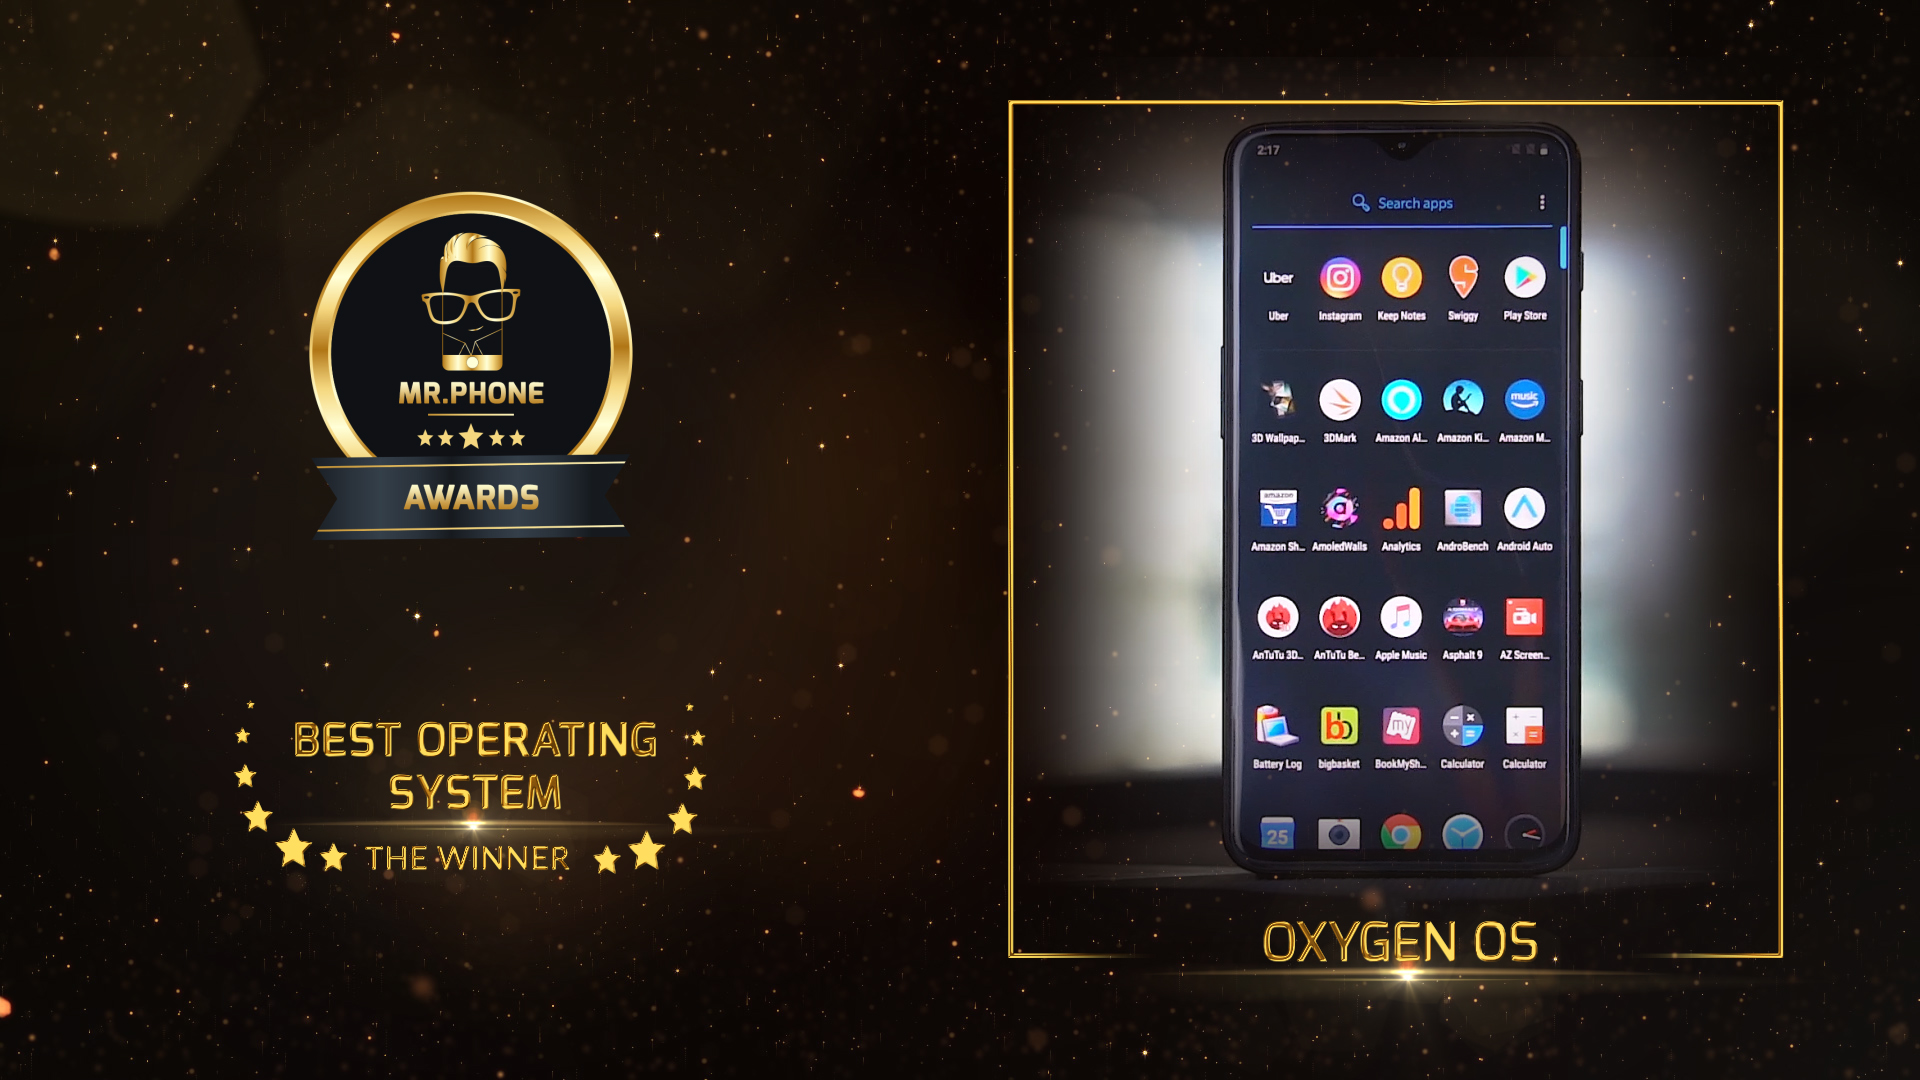 Mr. Phone Best Operating System 2018 - Oxygen OS